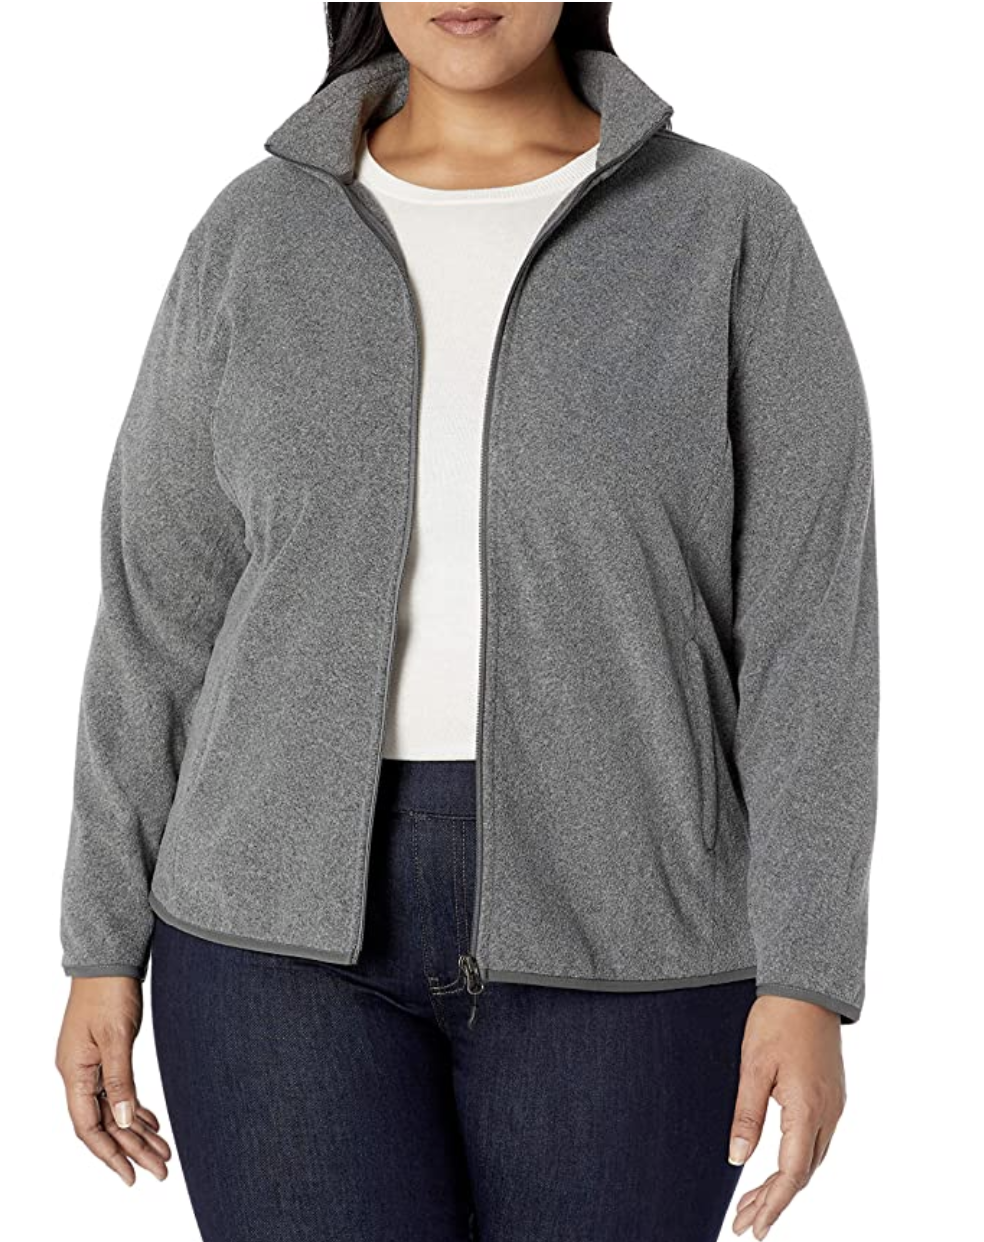 Model in a gray full zip fleece jacket with pockets and a high collar